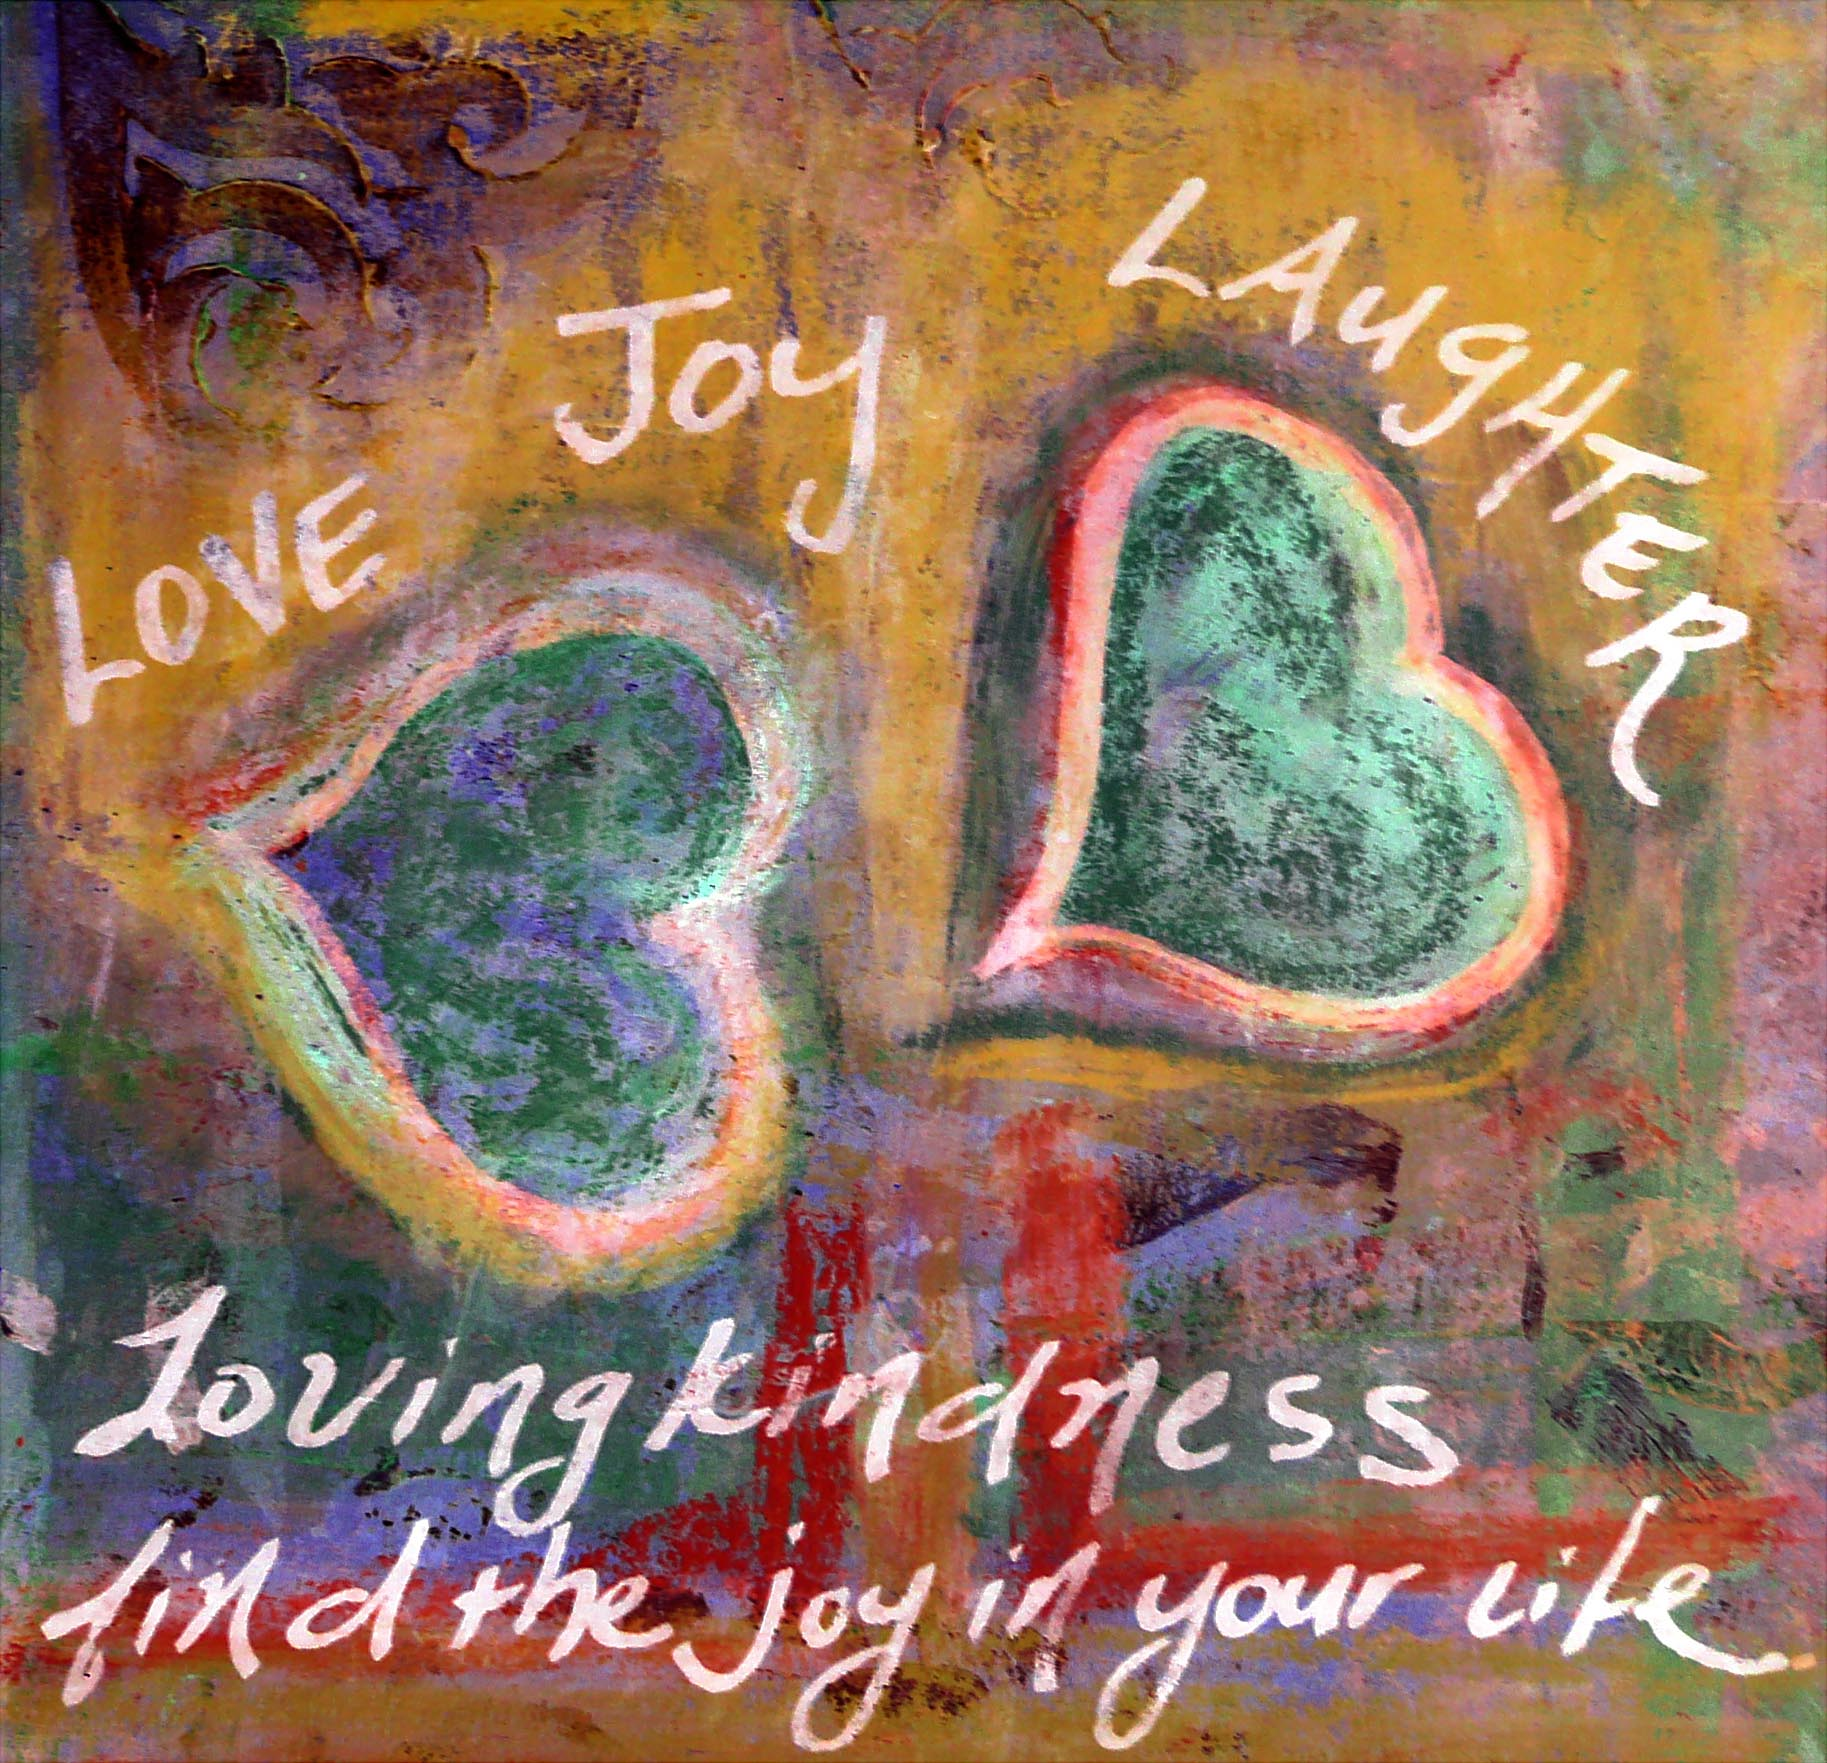 Love joy laughter